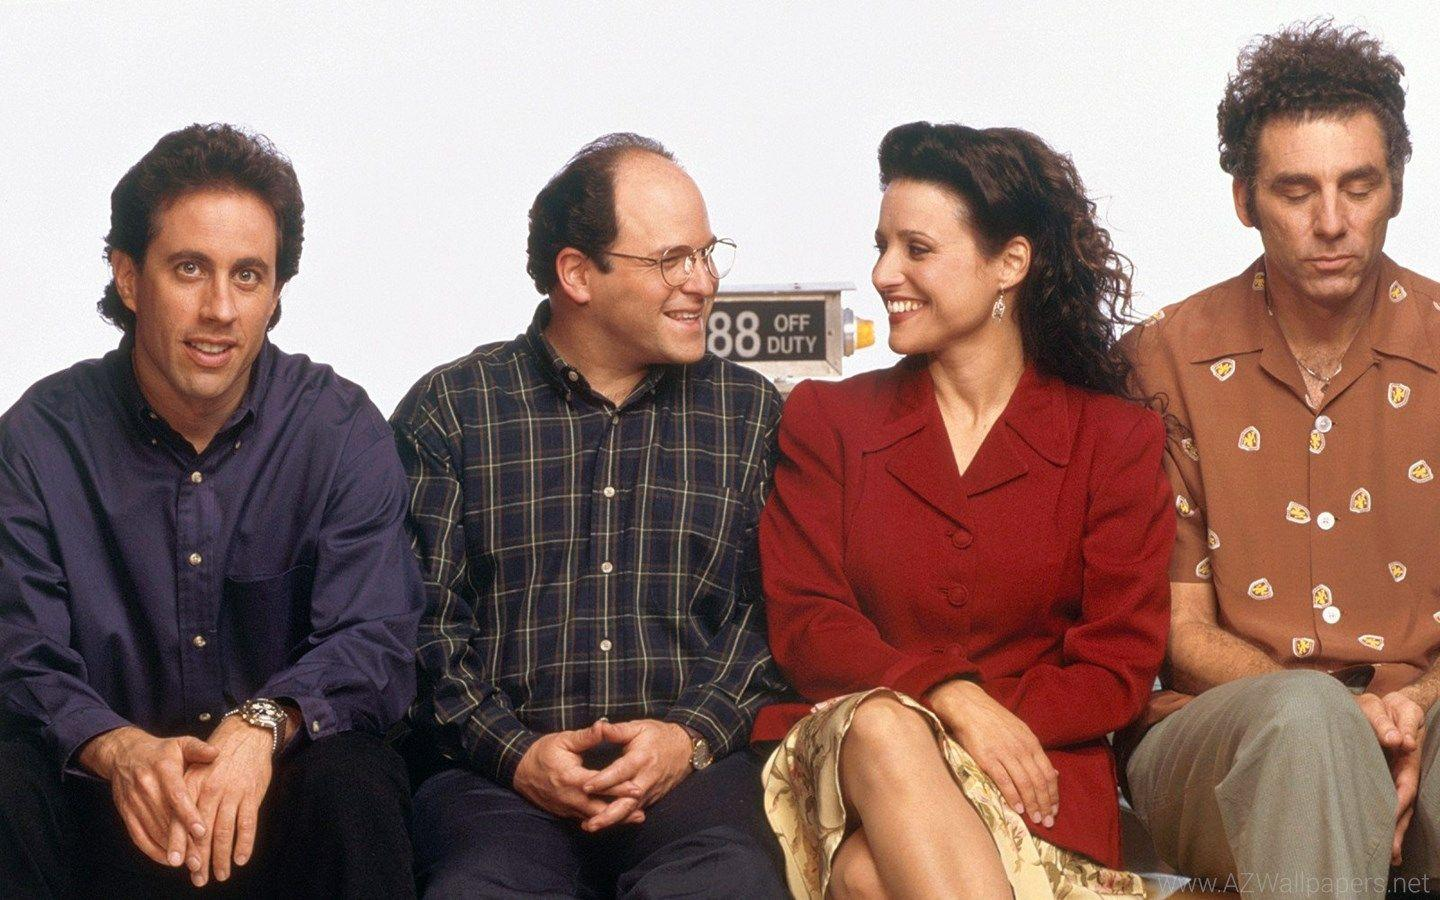 1492x982 Seinfeld Backgrounds Desktop Backgrounds